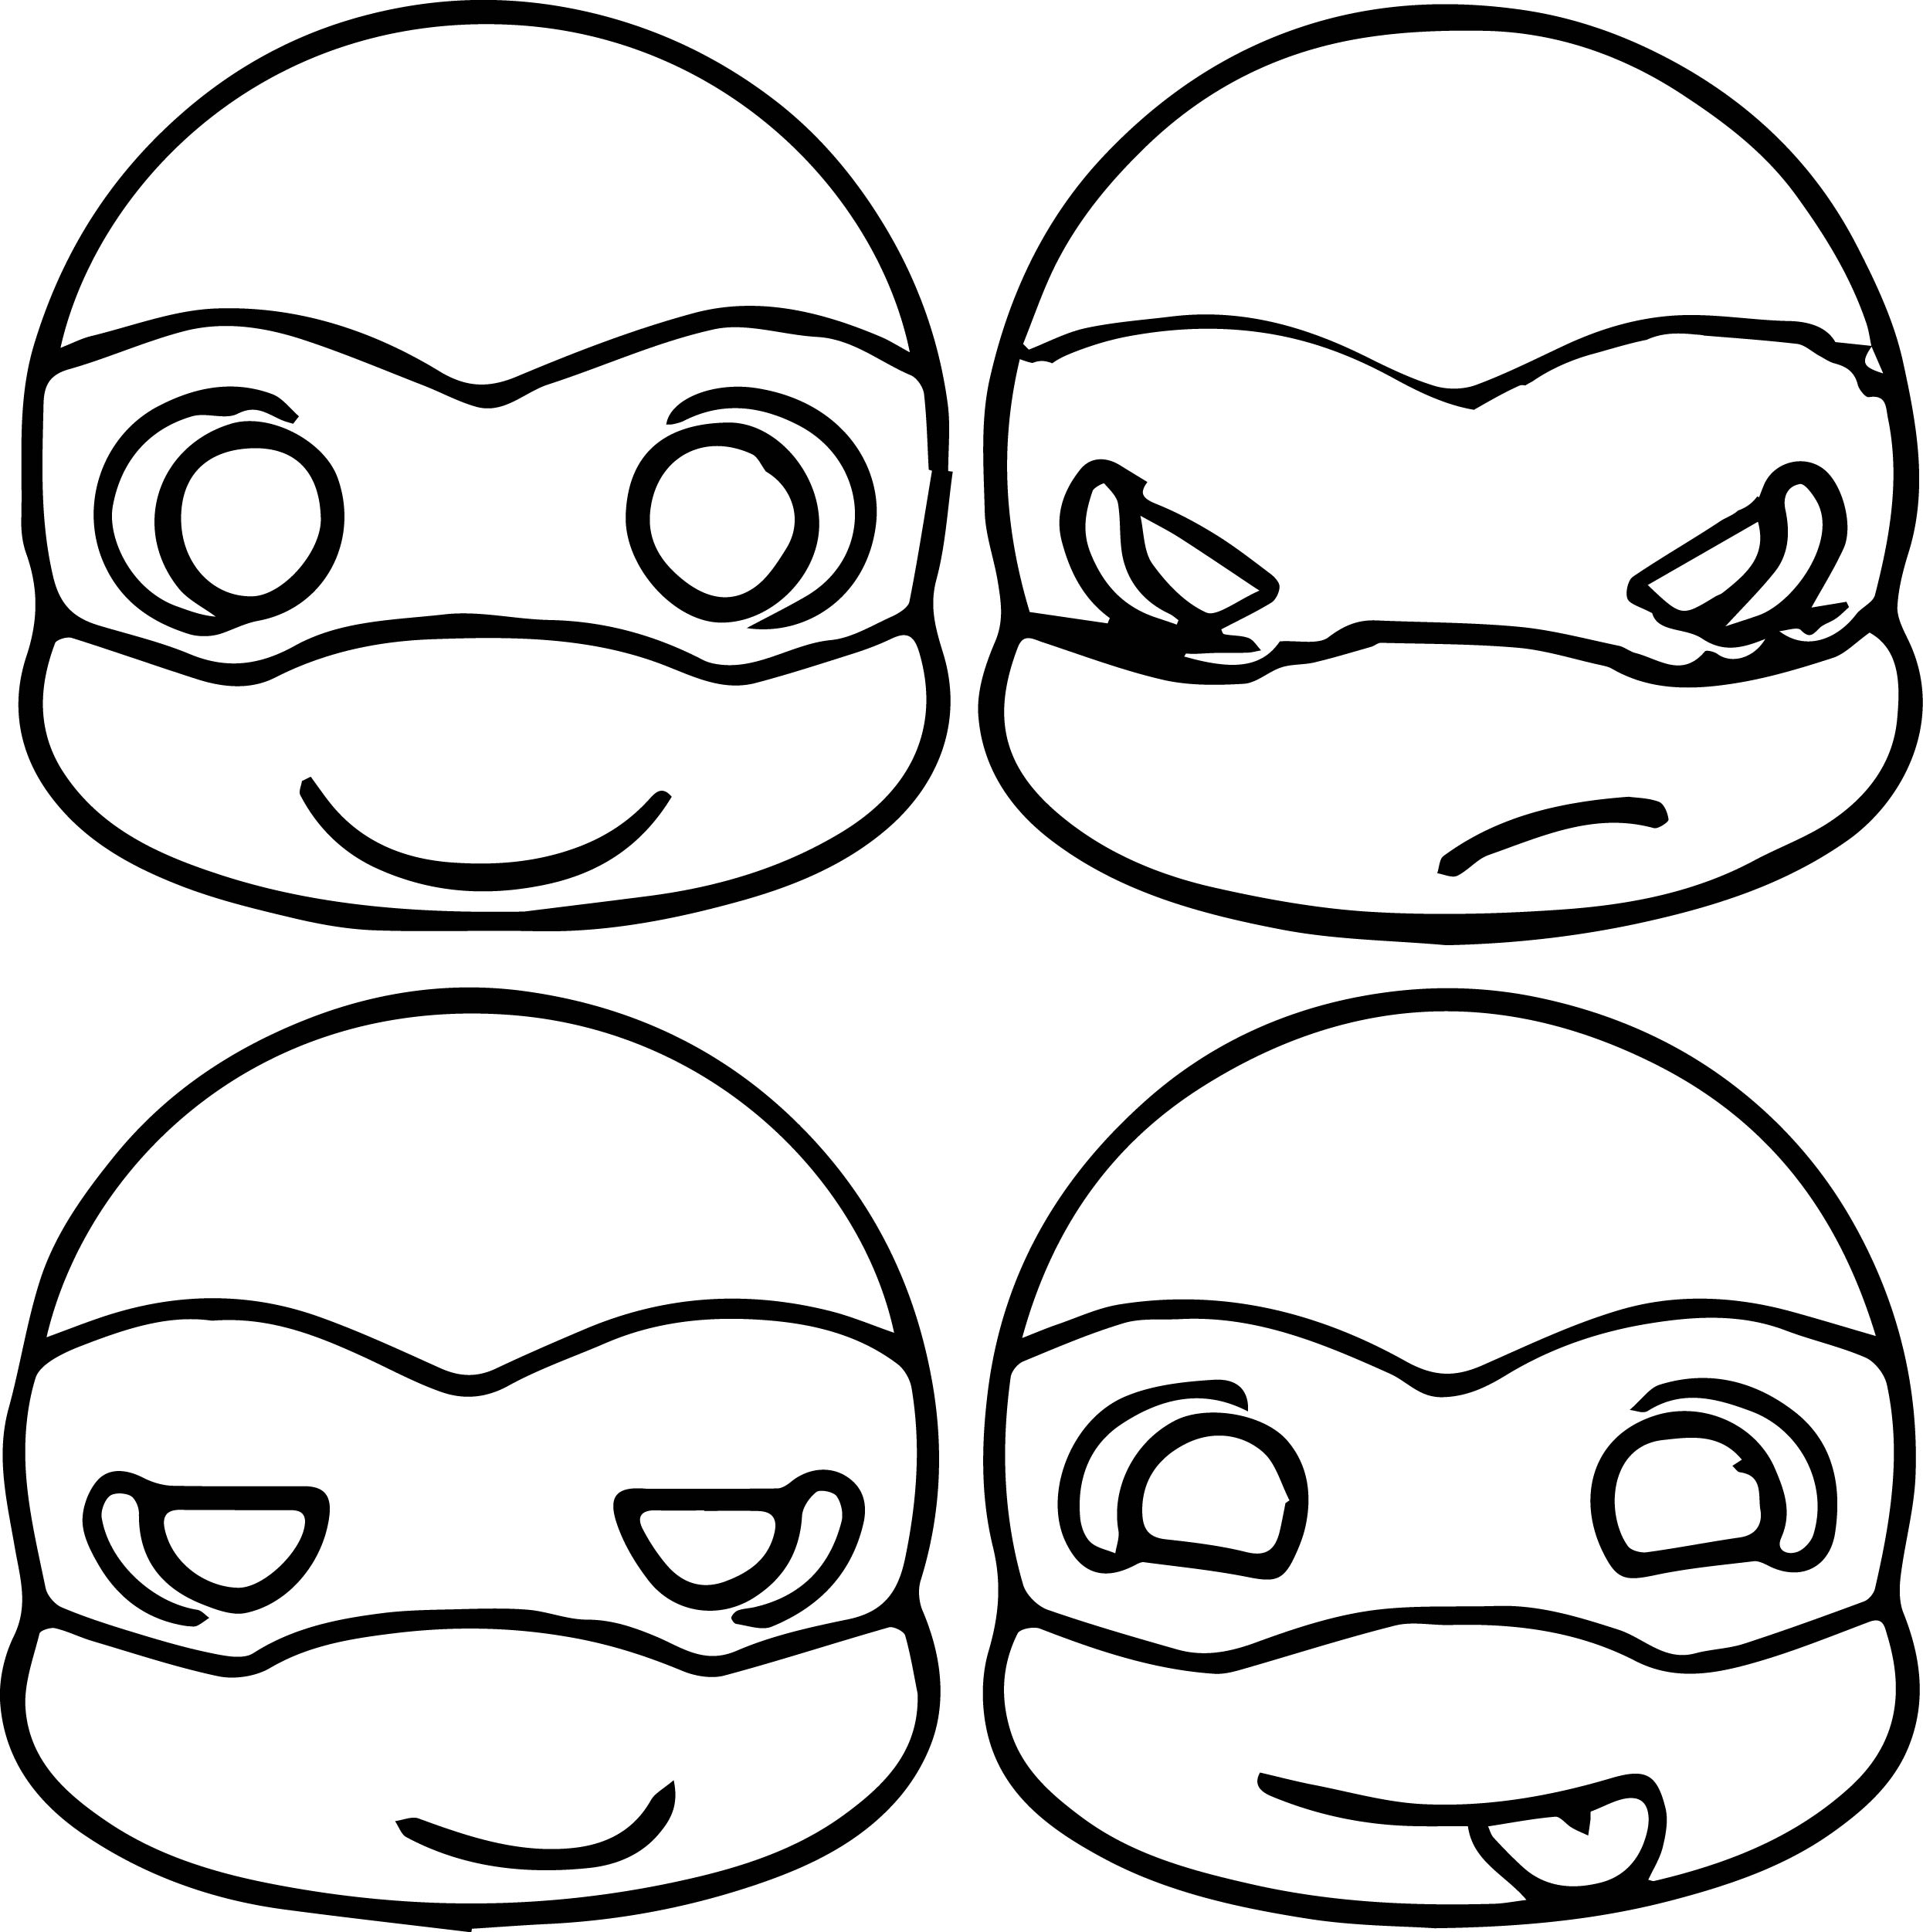 2490x2502 Coloring Pages Ninja Turtle Cartoon Coloring Pages Wecoloringpage